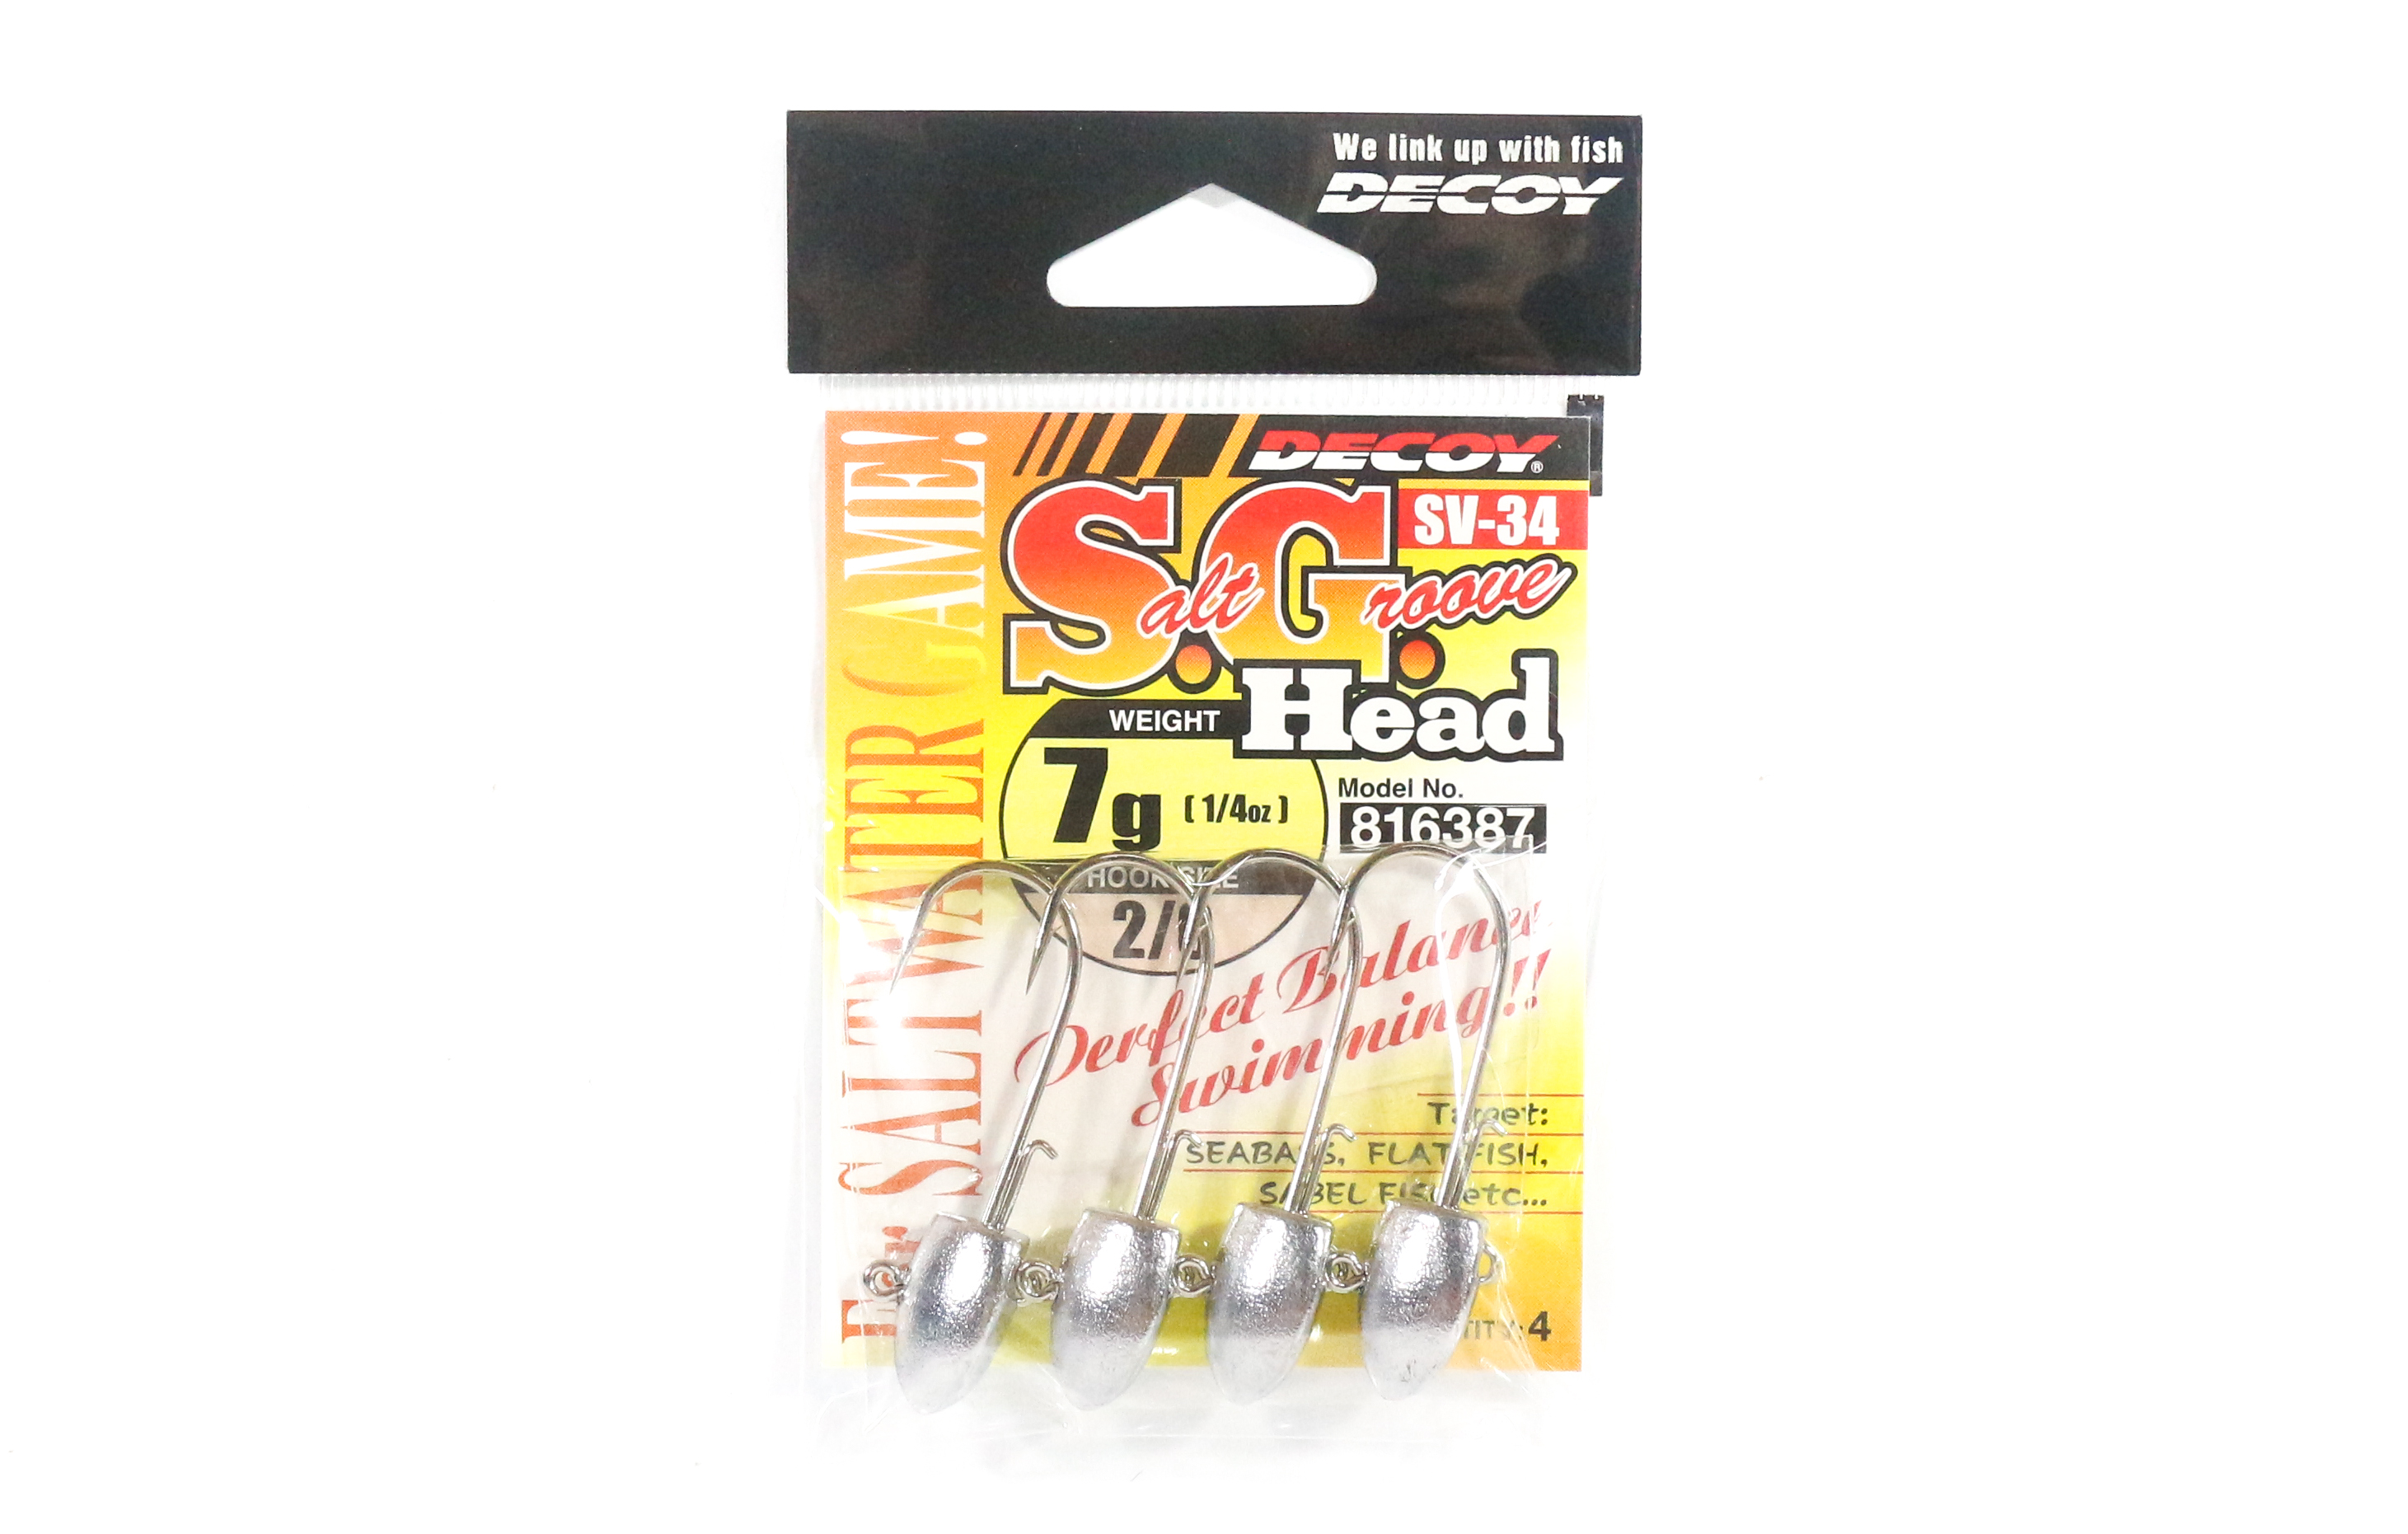 Decoy SV-34 Jig Head Salt Groove S.G Head Size 2/0 , 7 grams (6387)